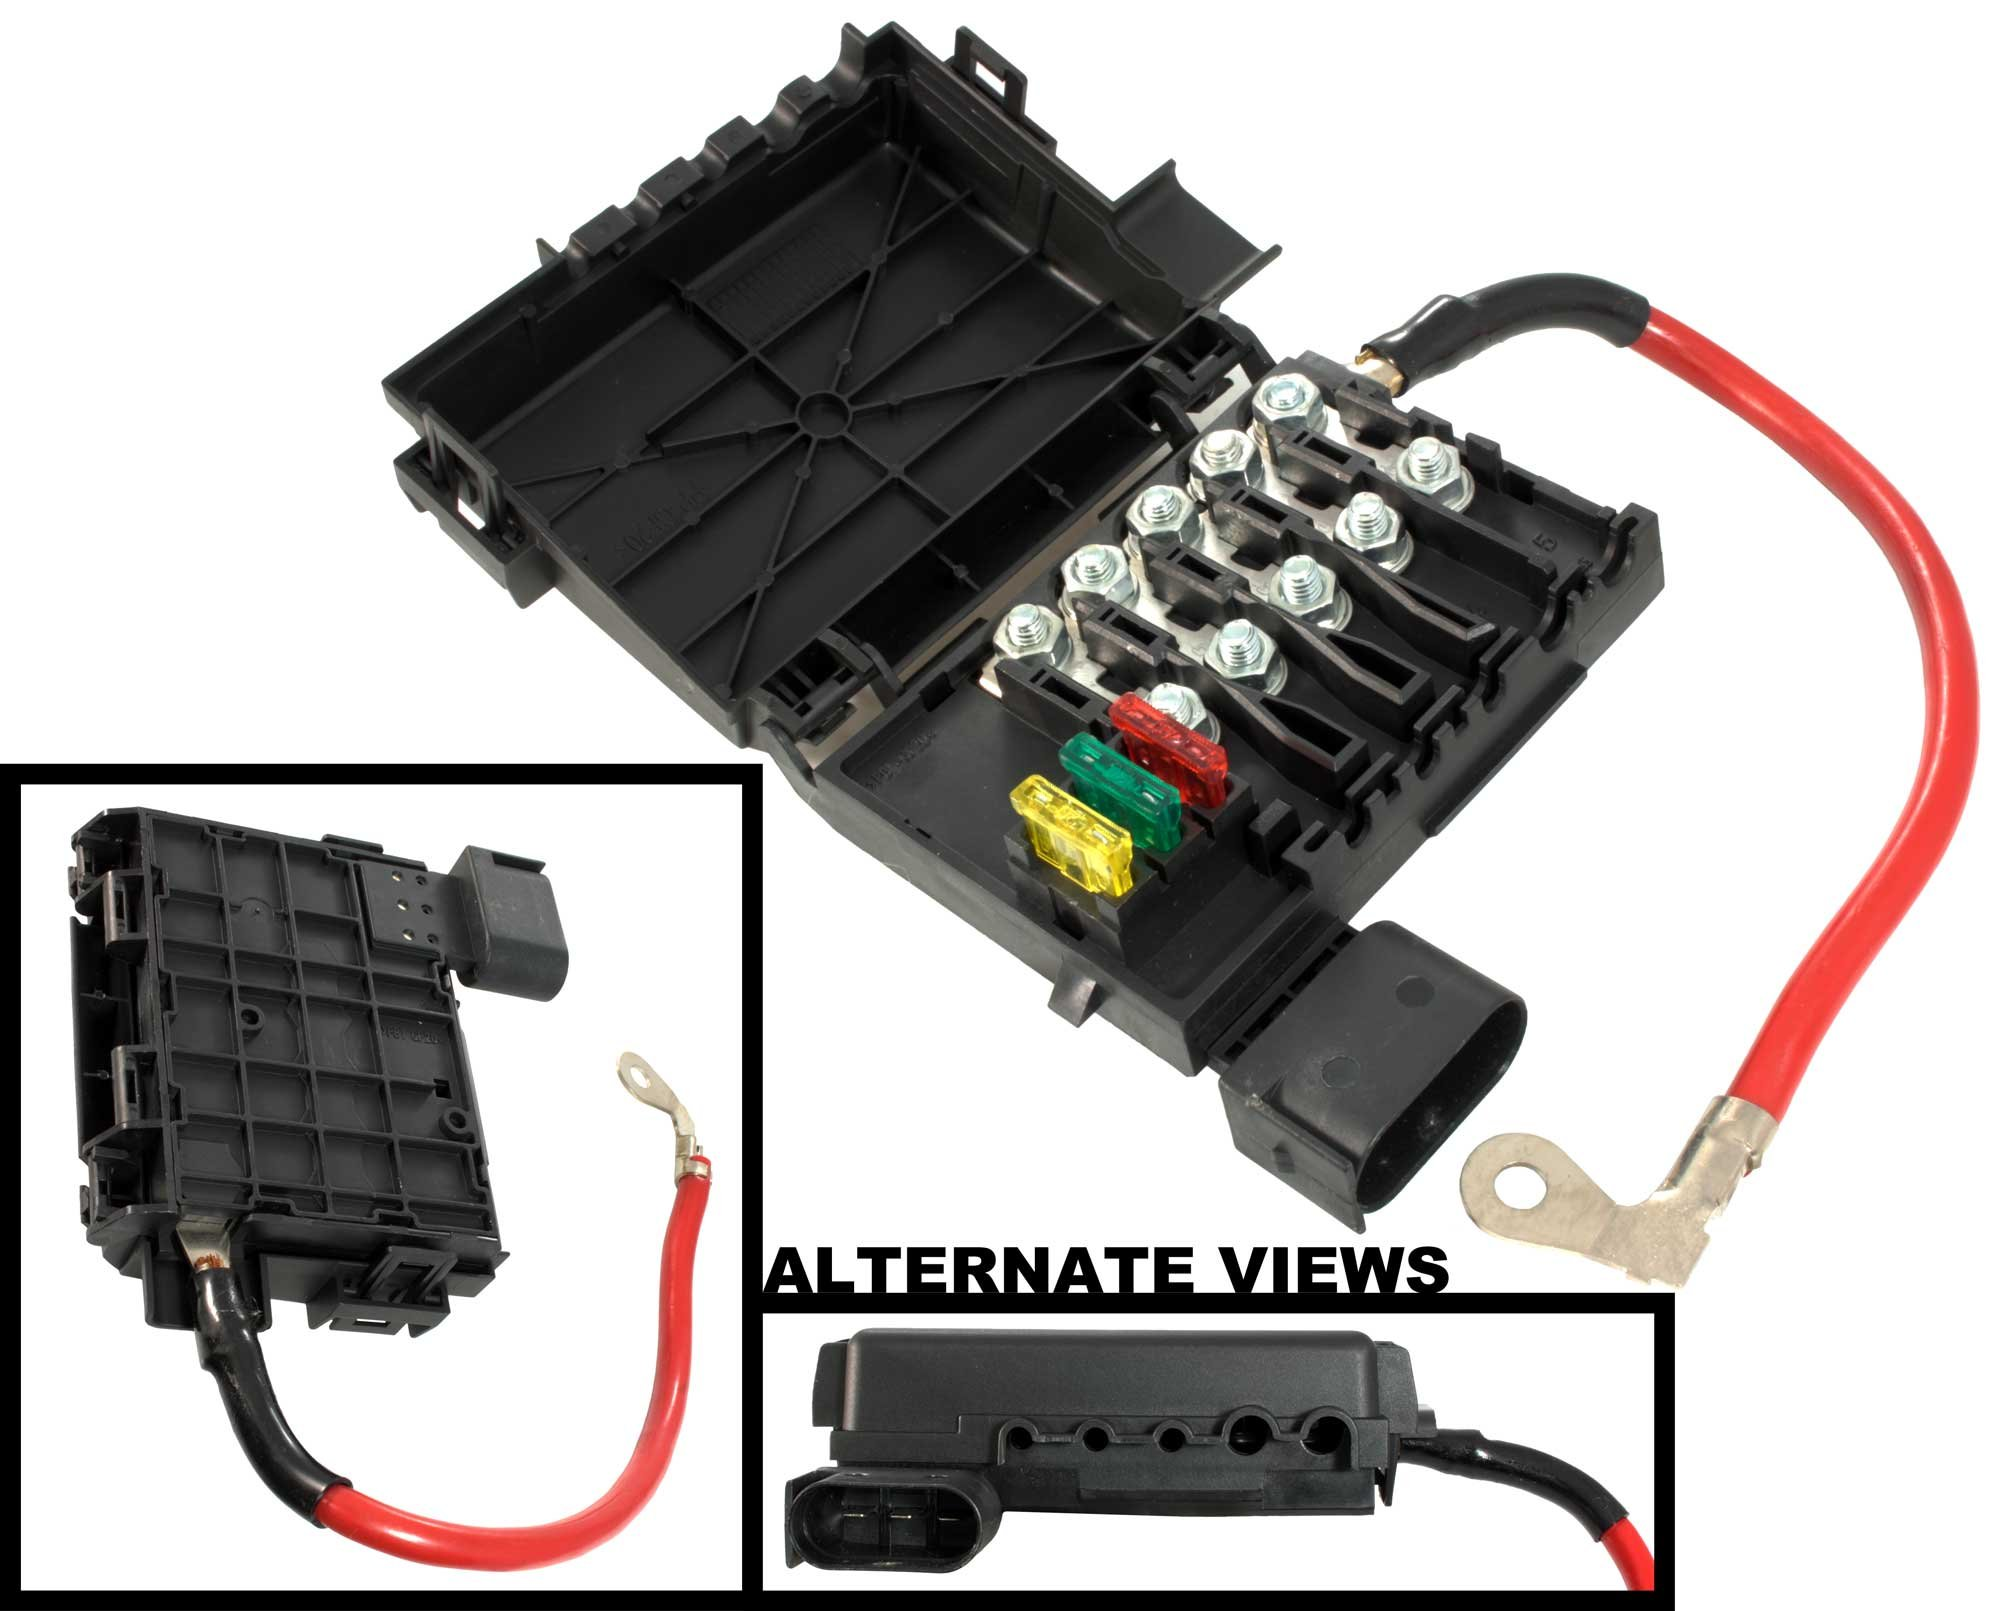 Best Rated In Automotive Replacement Fuse Boxes Helpful Customer 1998 Jeep Classic Box Apdty 035792 Assembly Battery Mounted With New Fuses Fusible Links Fits